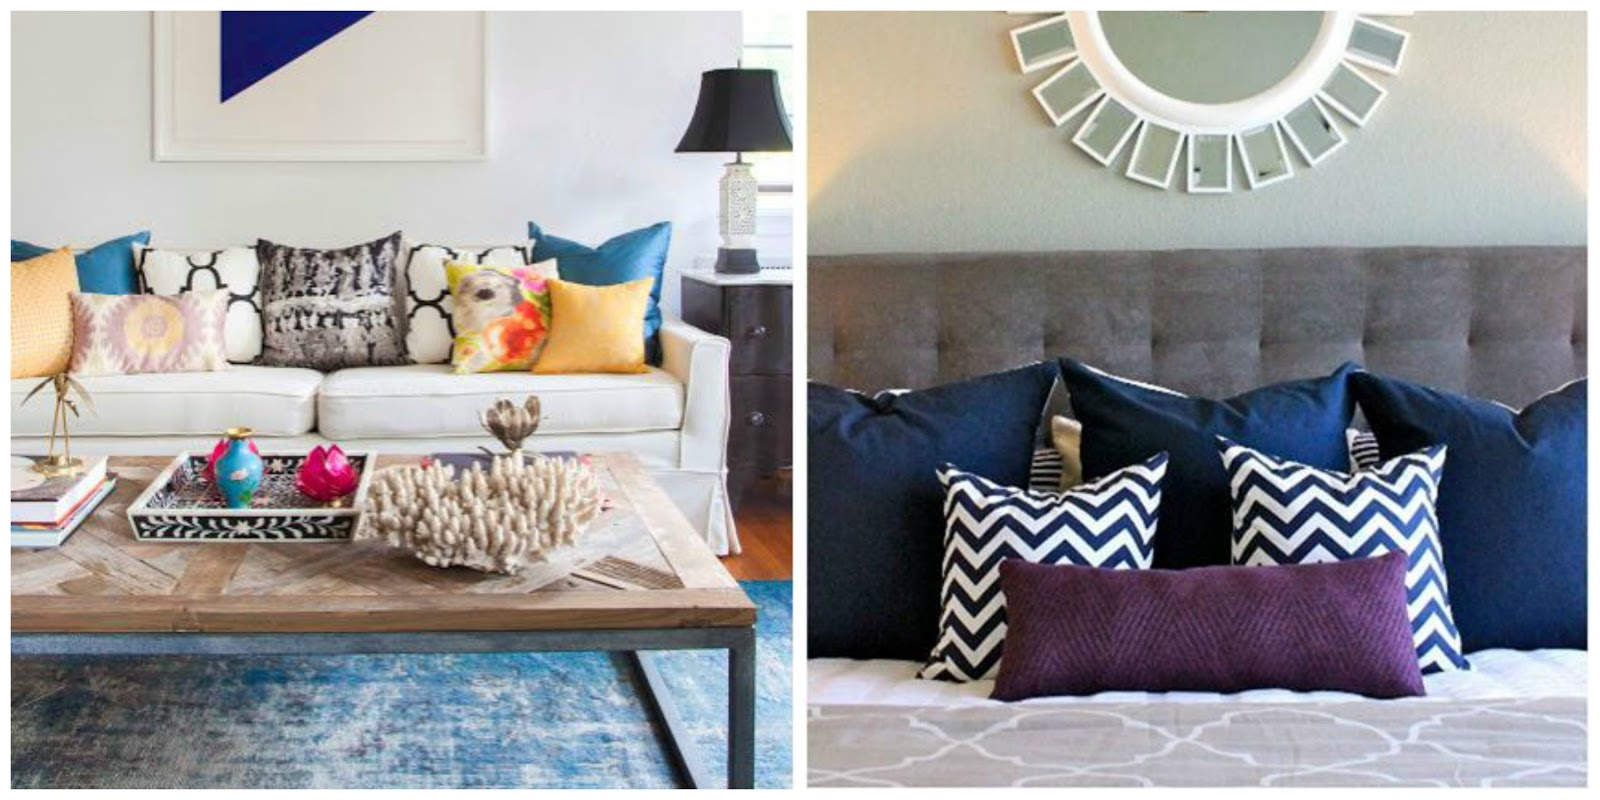 3 Easy Ways To Update Your Home Without A Complete Remodel